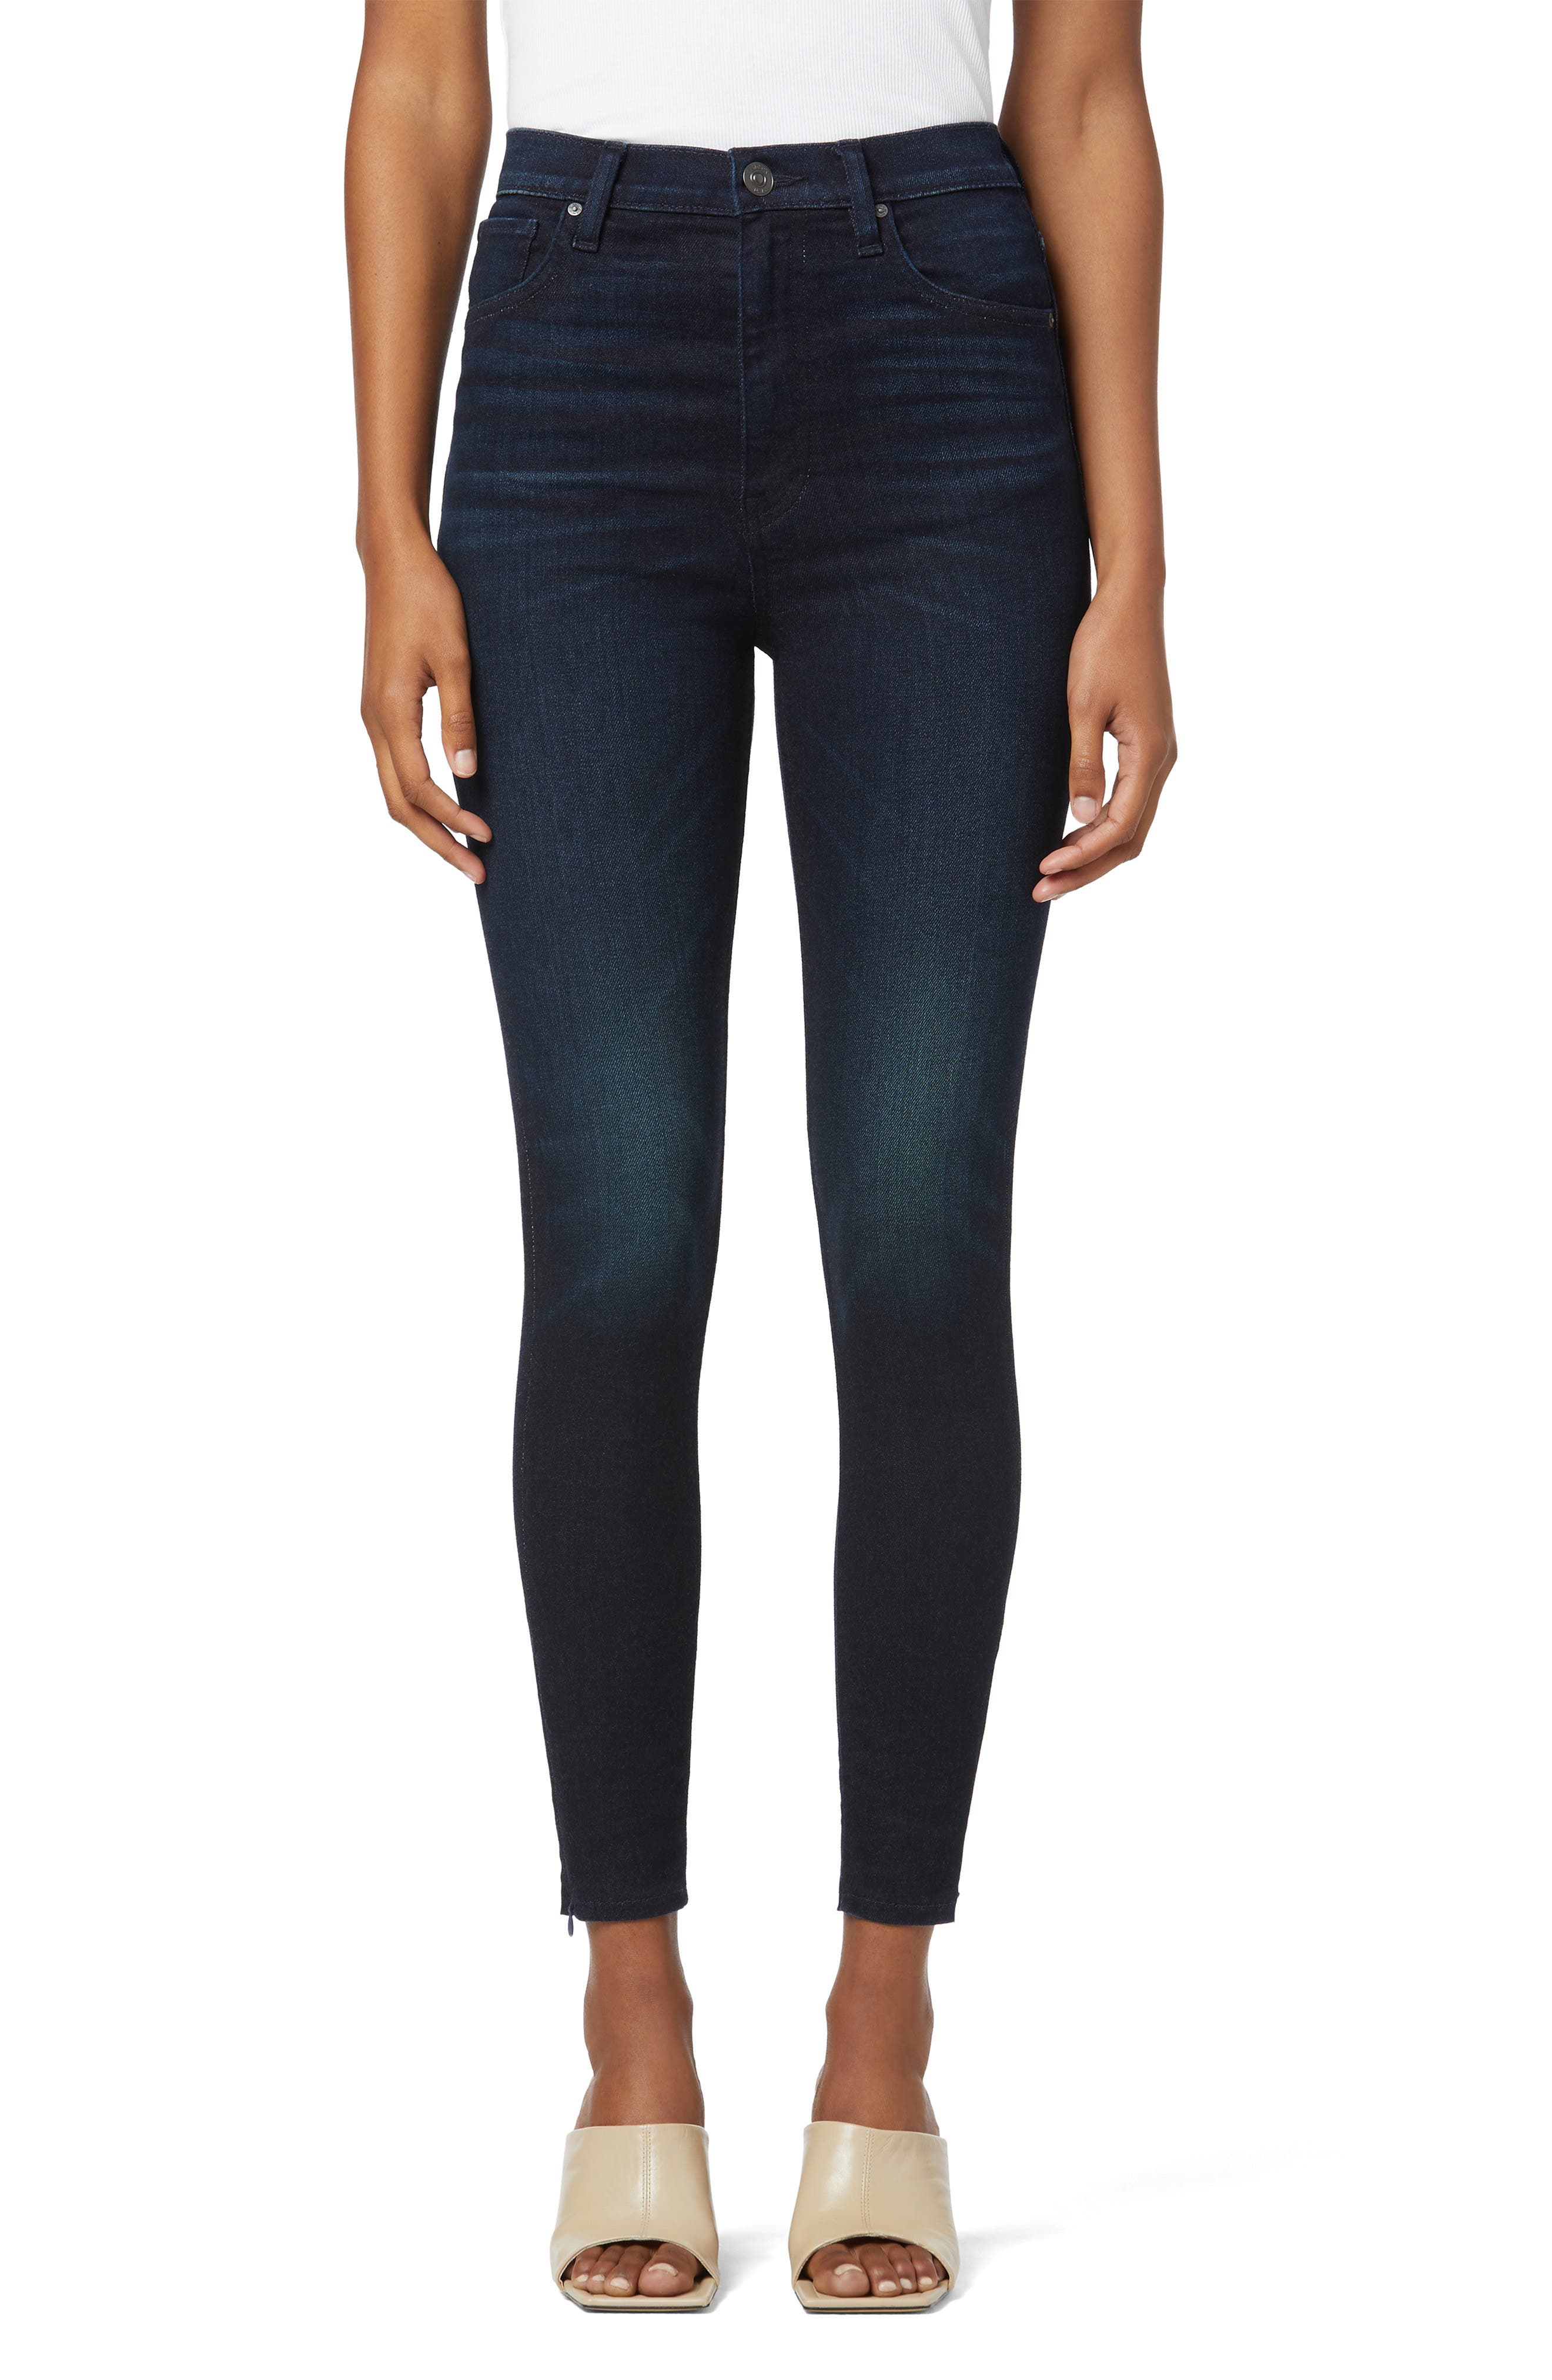 Centerfold Extended High Waist Ankle Skinny Jeans